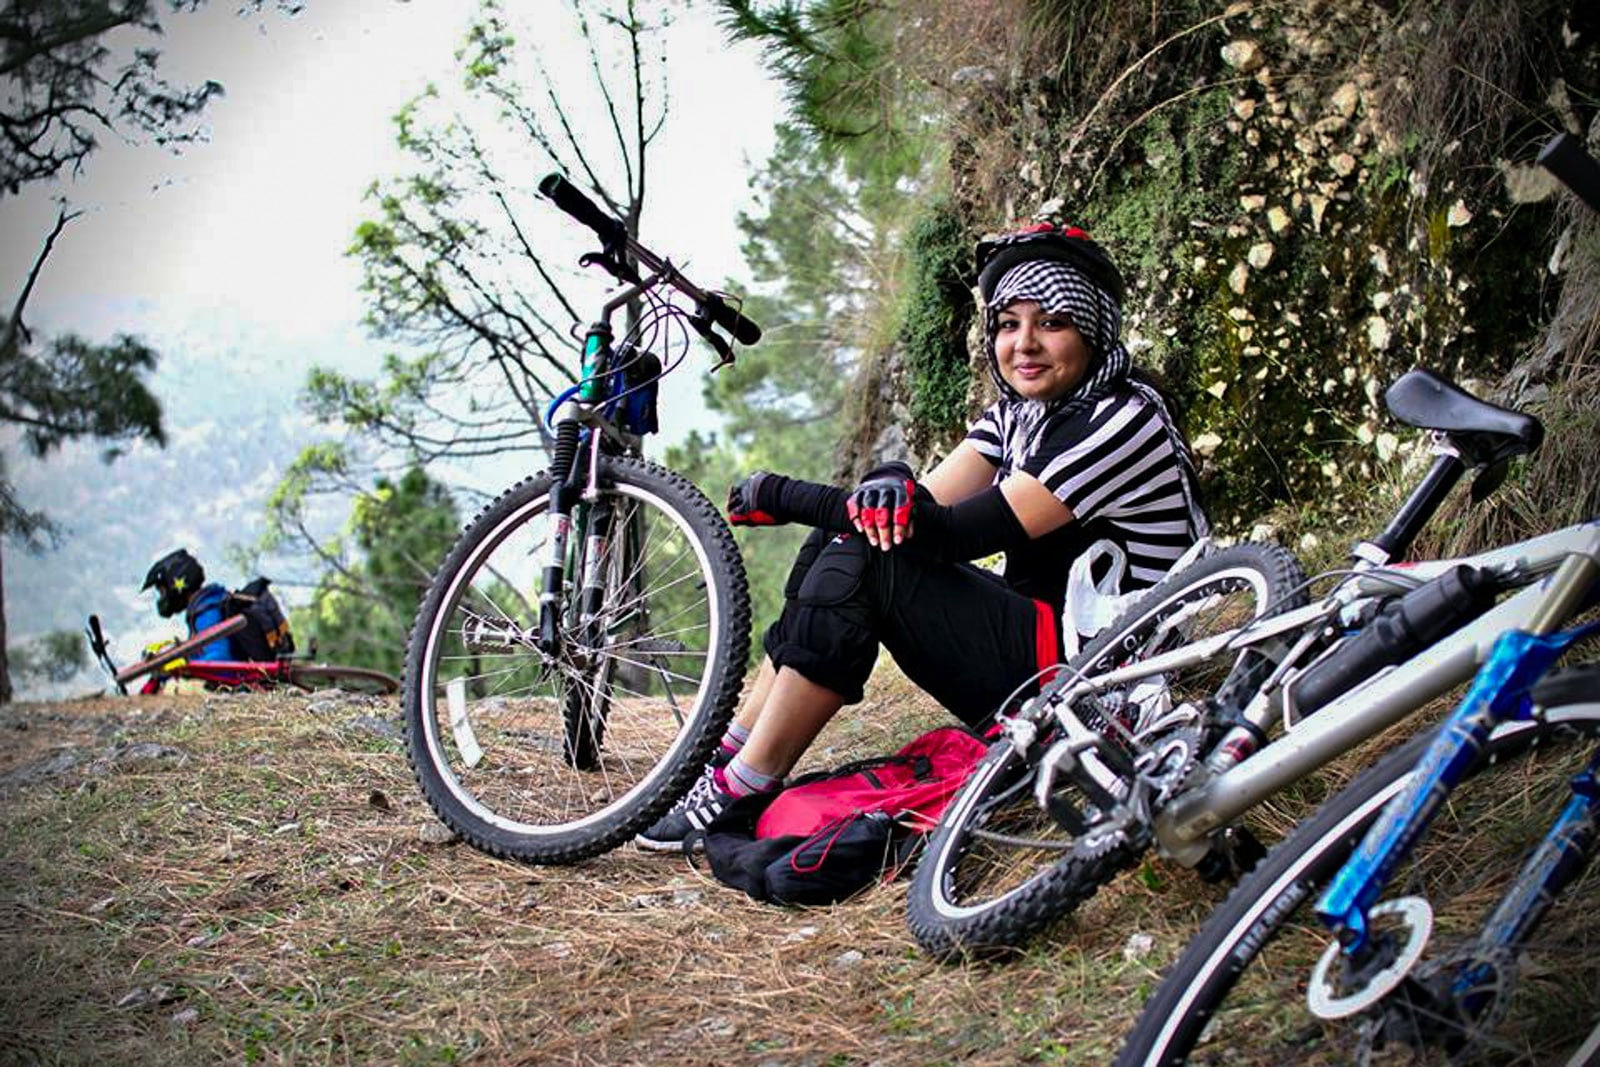 Bossy travelers interview with Aneeqa, head of Pakistan's first female-run tour company - Aneeqa with bicycle